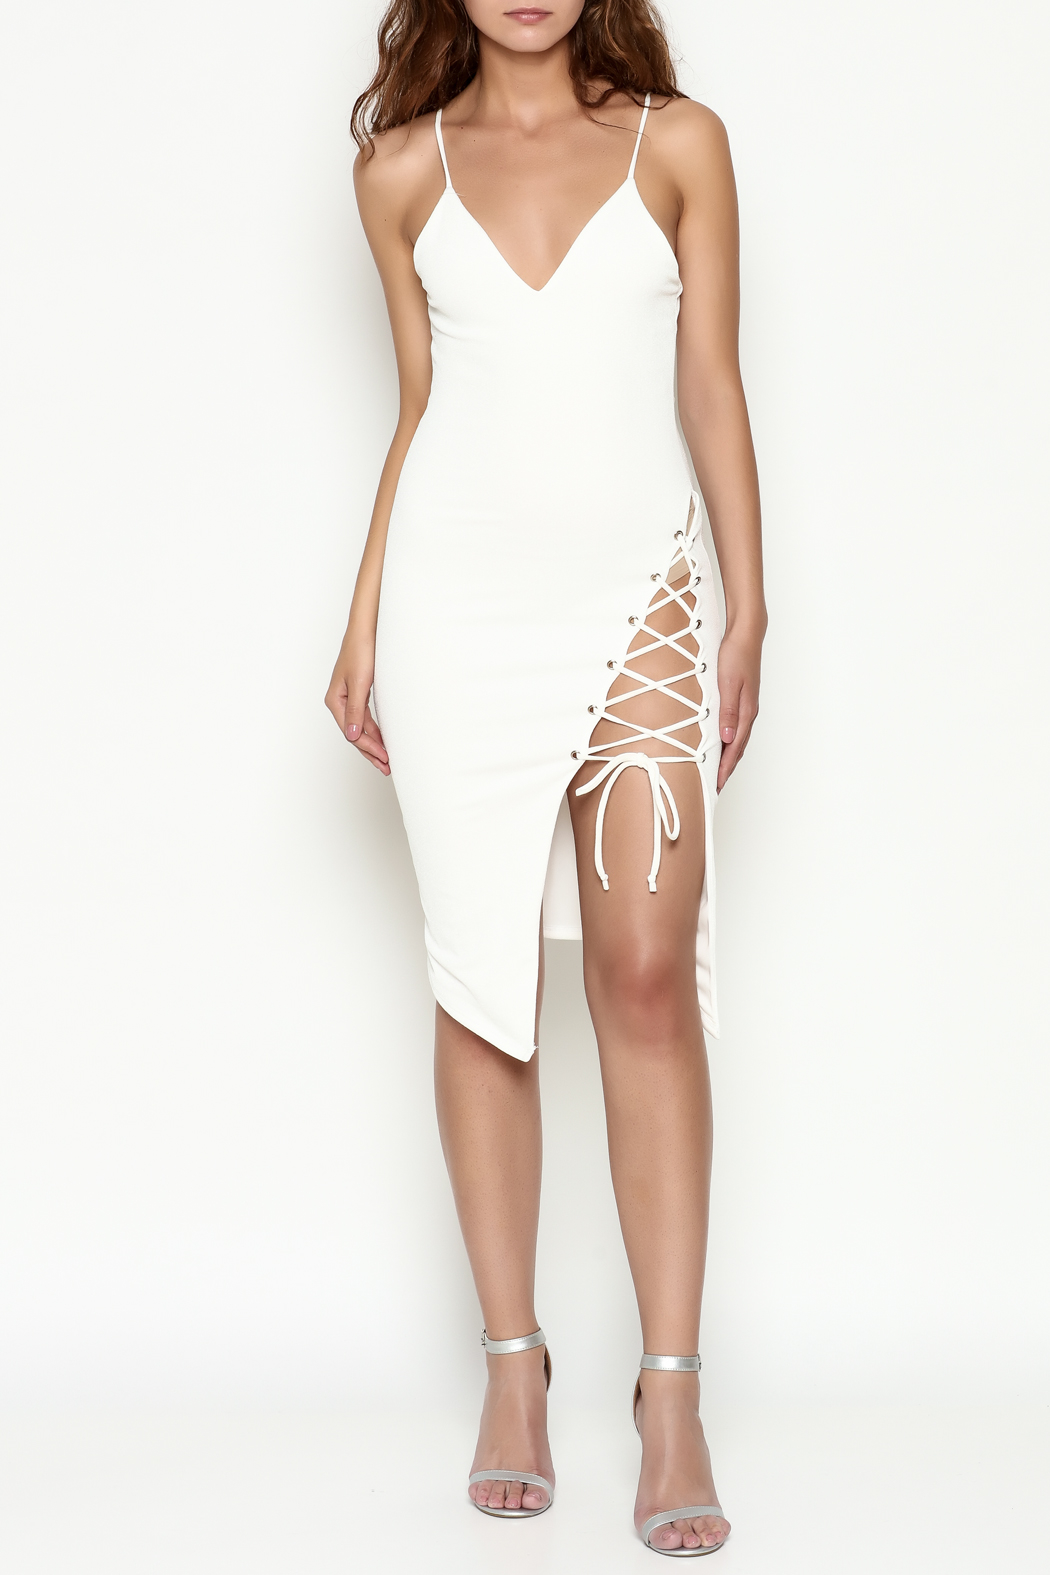 Hot & Delicious Tie Up White Dress - Side Cropped Image